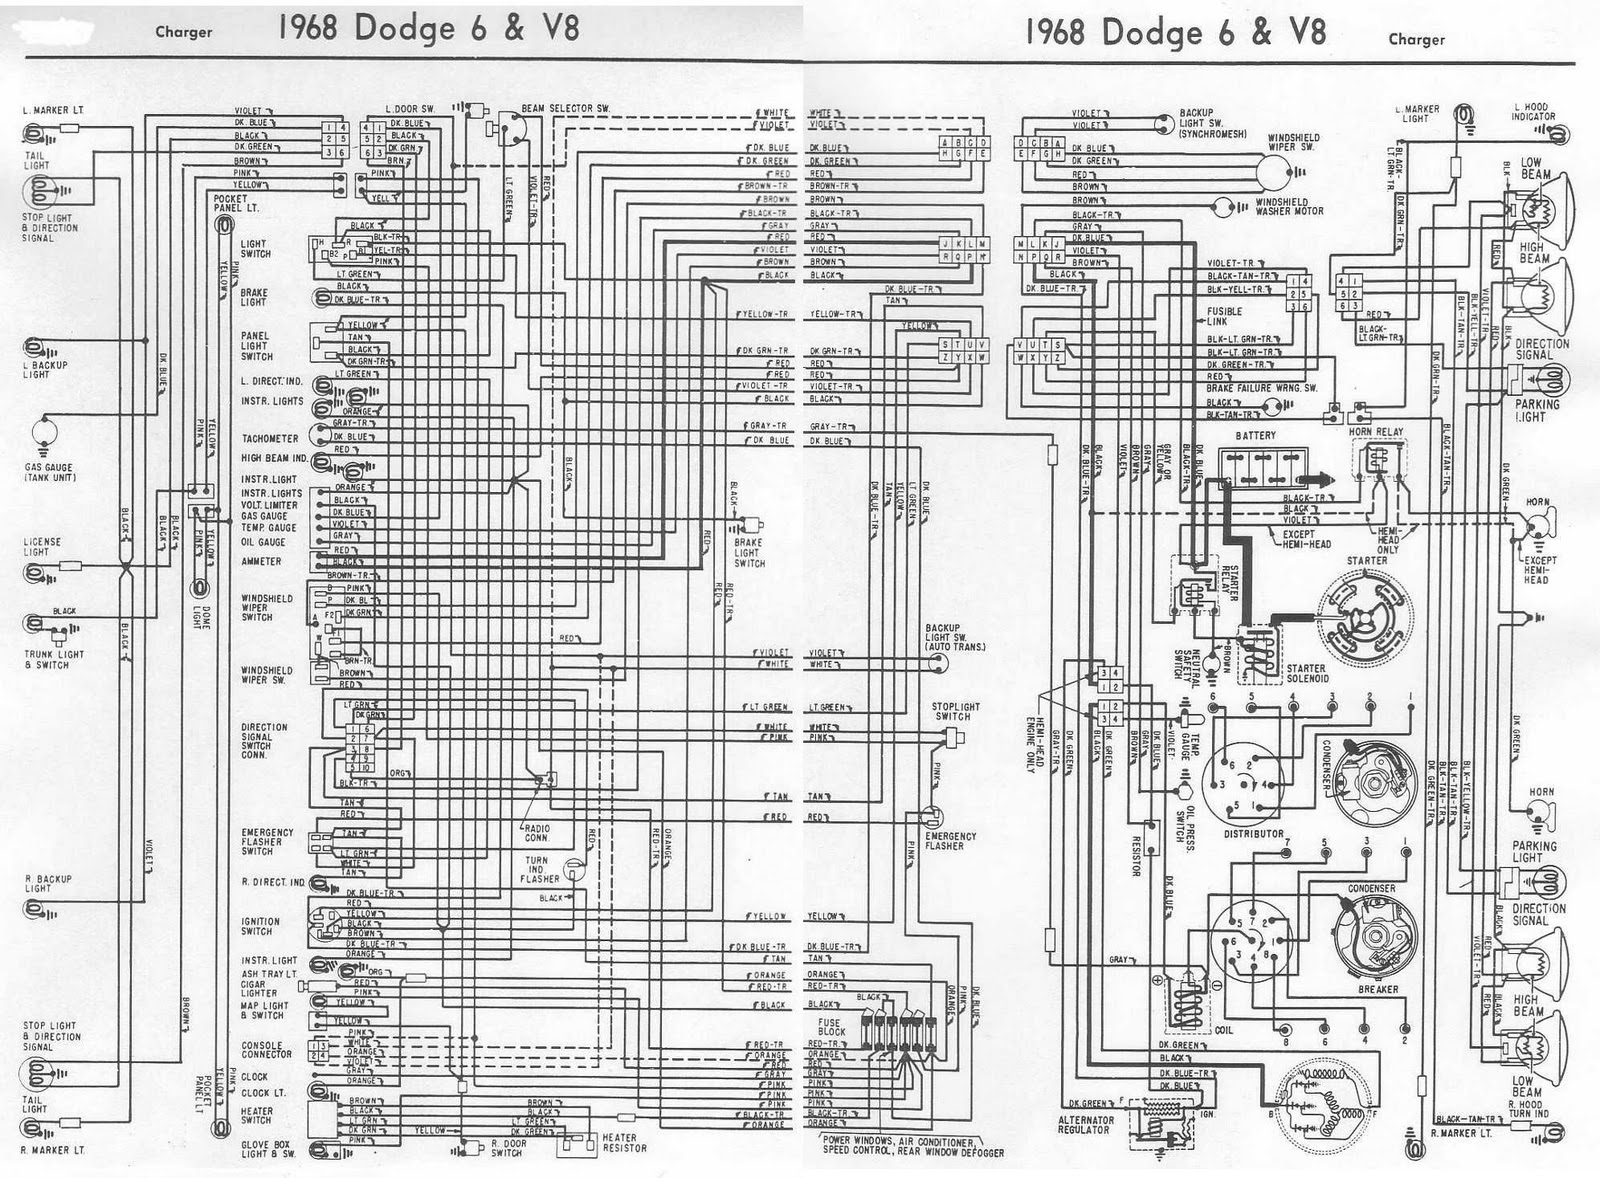 66 Charger Wiring Diagram Great Design Of Pro Comp Distributor For Chevy Dodge 1968 6 And V8 Complete Electrical 1966